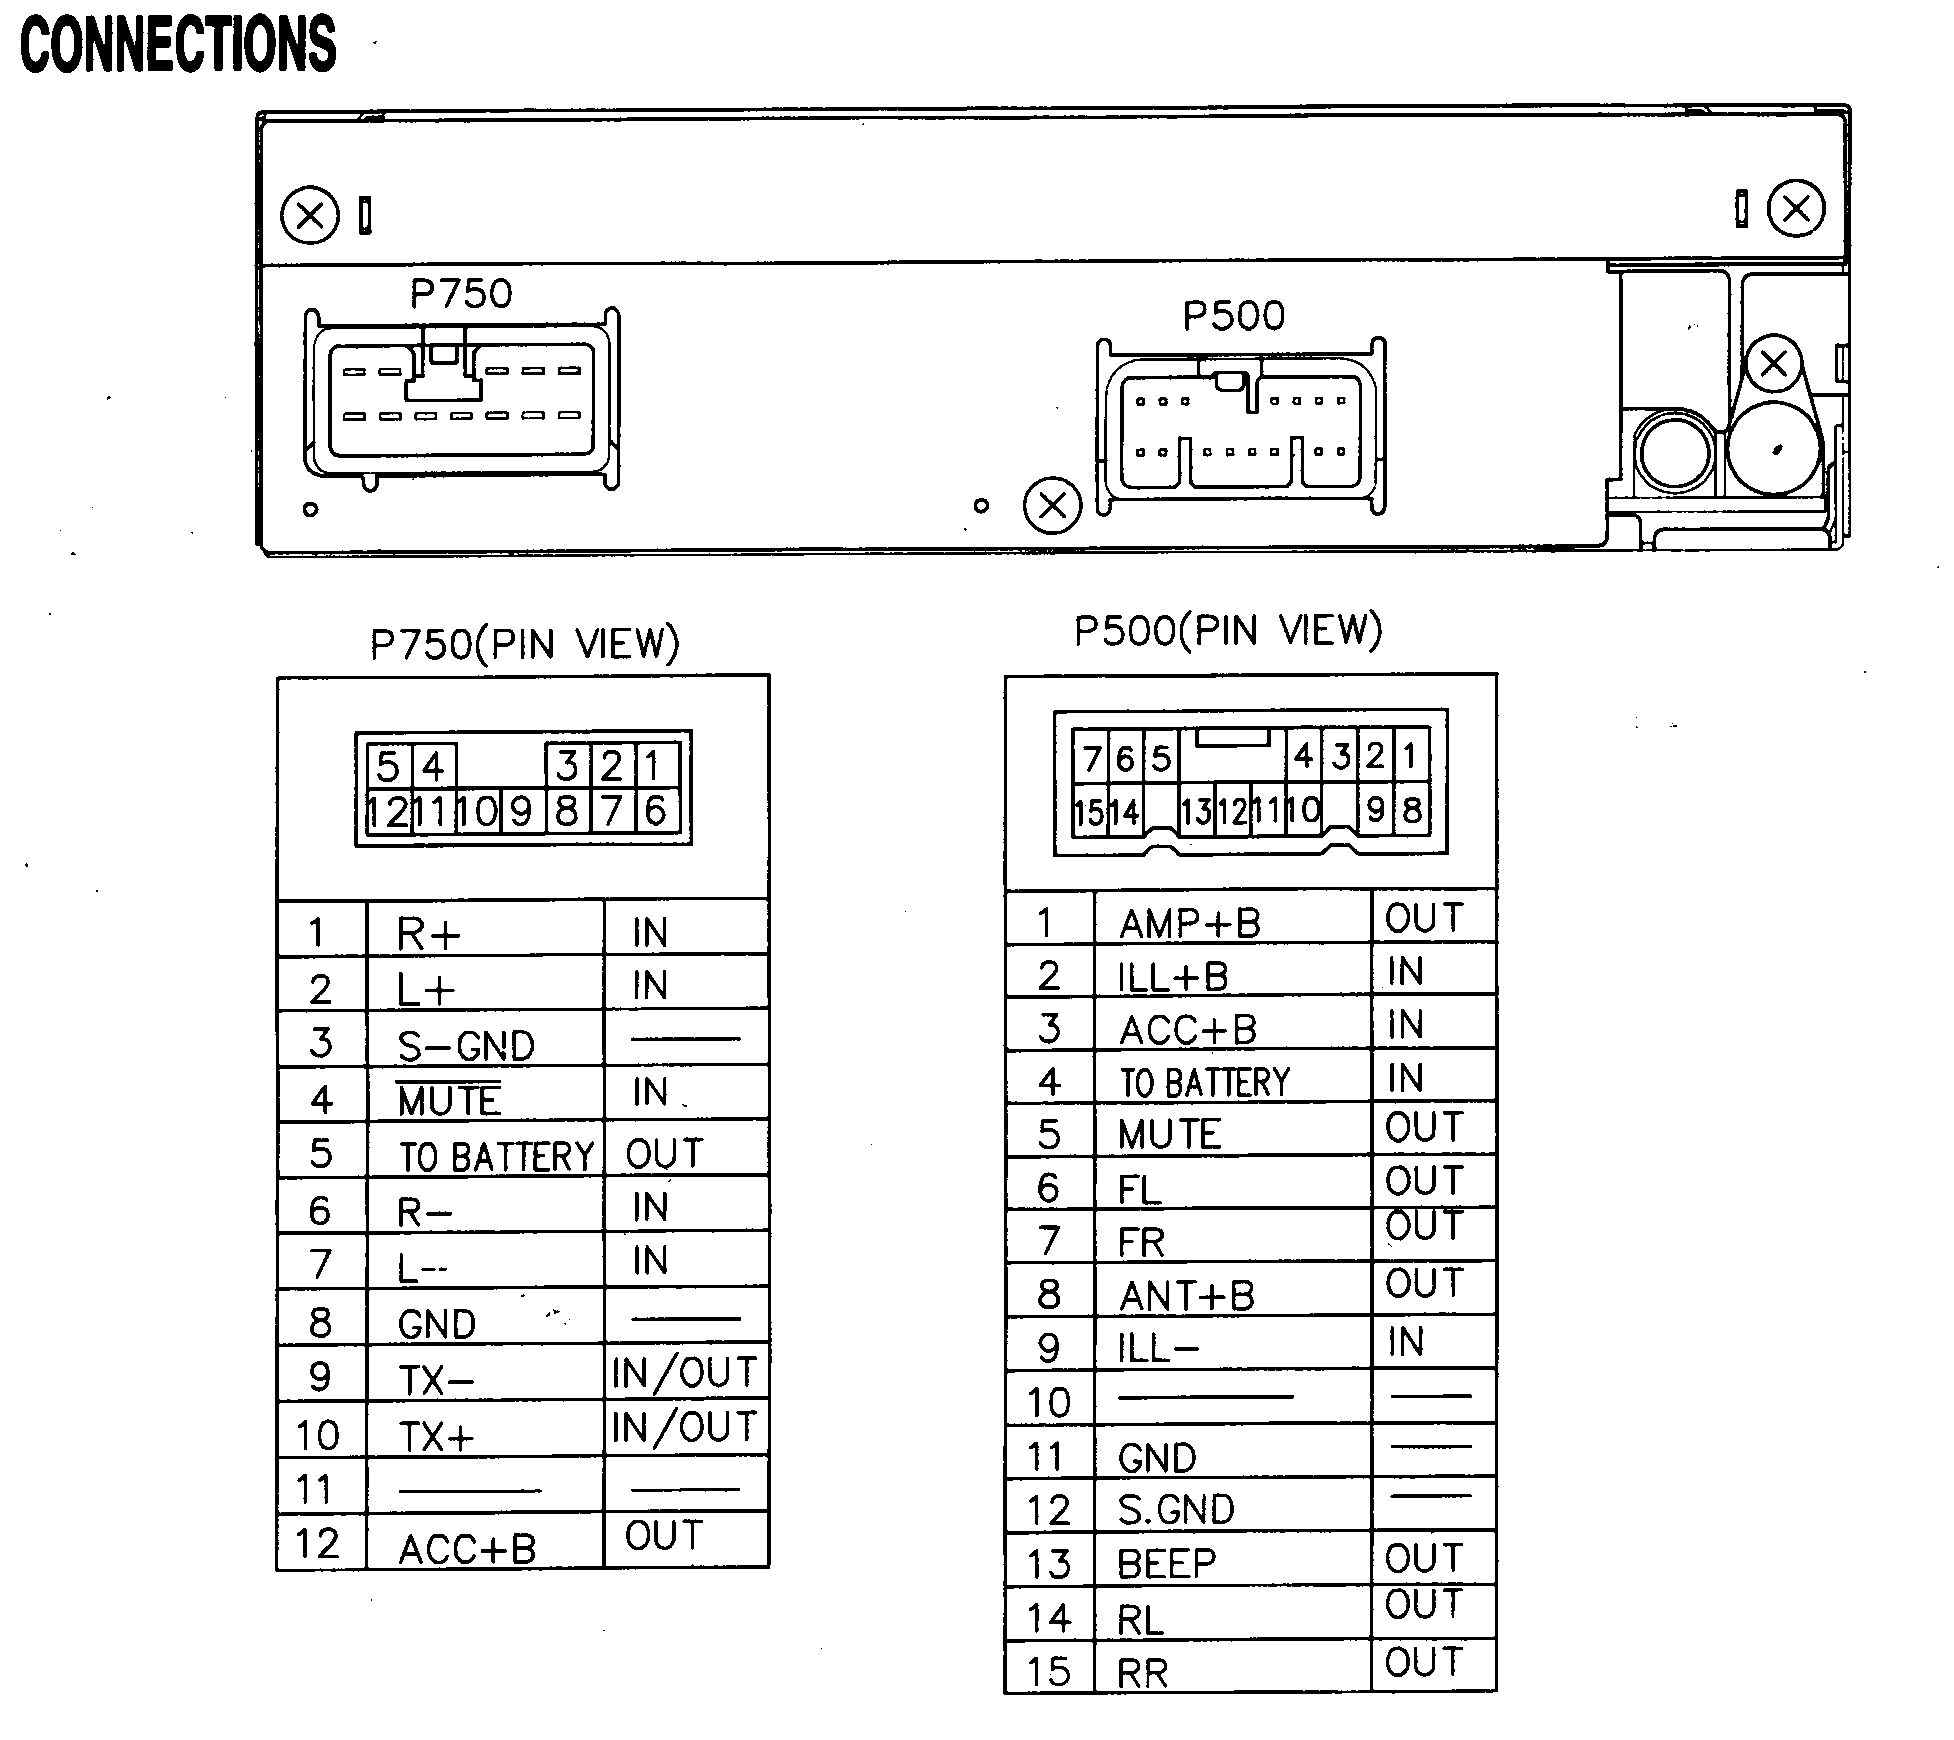 Stereo Diagram Car Wiring Jvcr840bt Circuit Symbols Bose Subwoofer Free Download For Rh Xwiaw Us Speaker Ford Diagrams